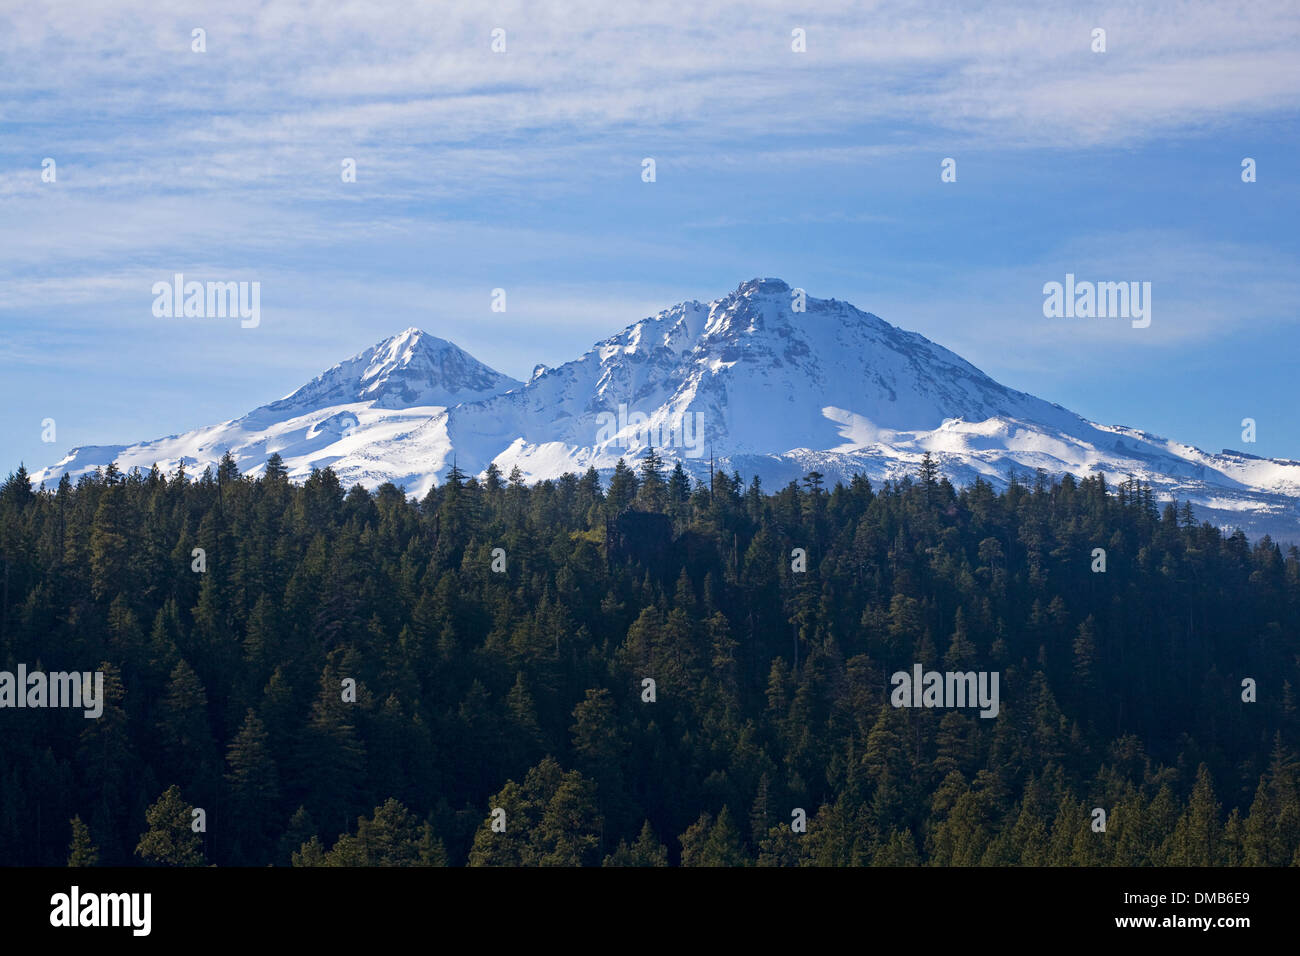 The North and Middle Sisters Peaks in the Oregon Cascades, near sisters, Oregon - Stock Image